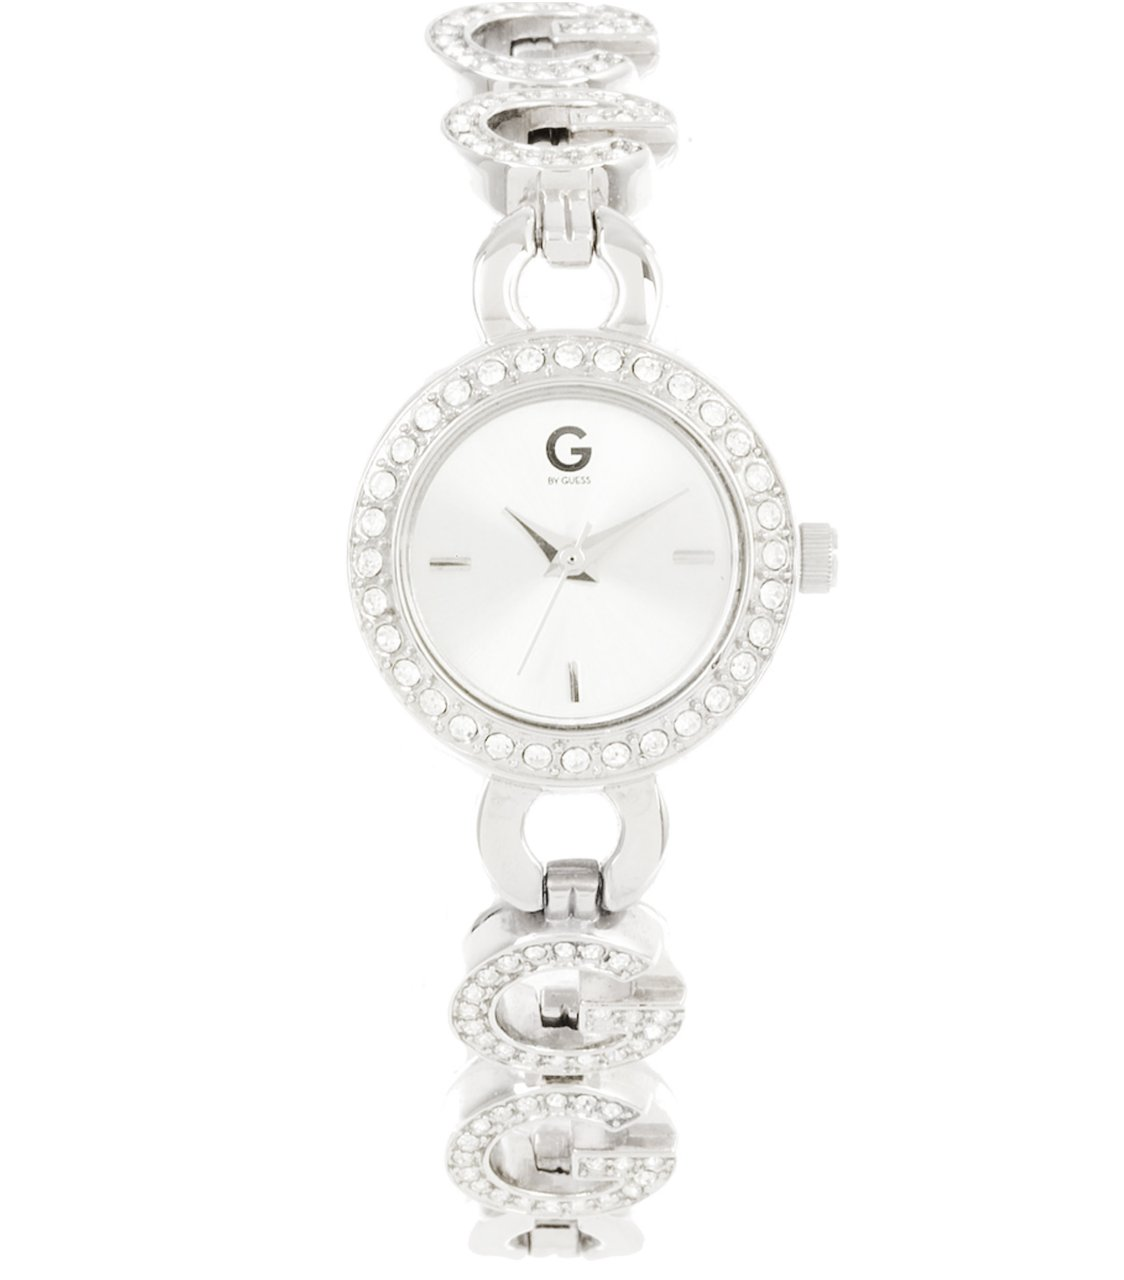 G by GUESS Silver-Tone Bracelet Watch